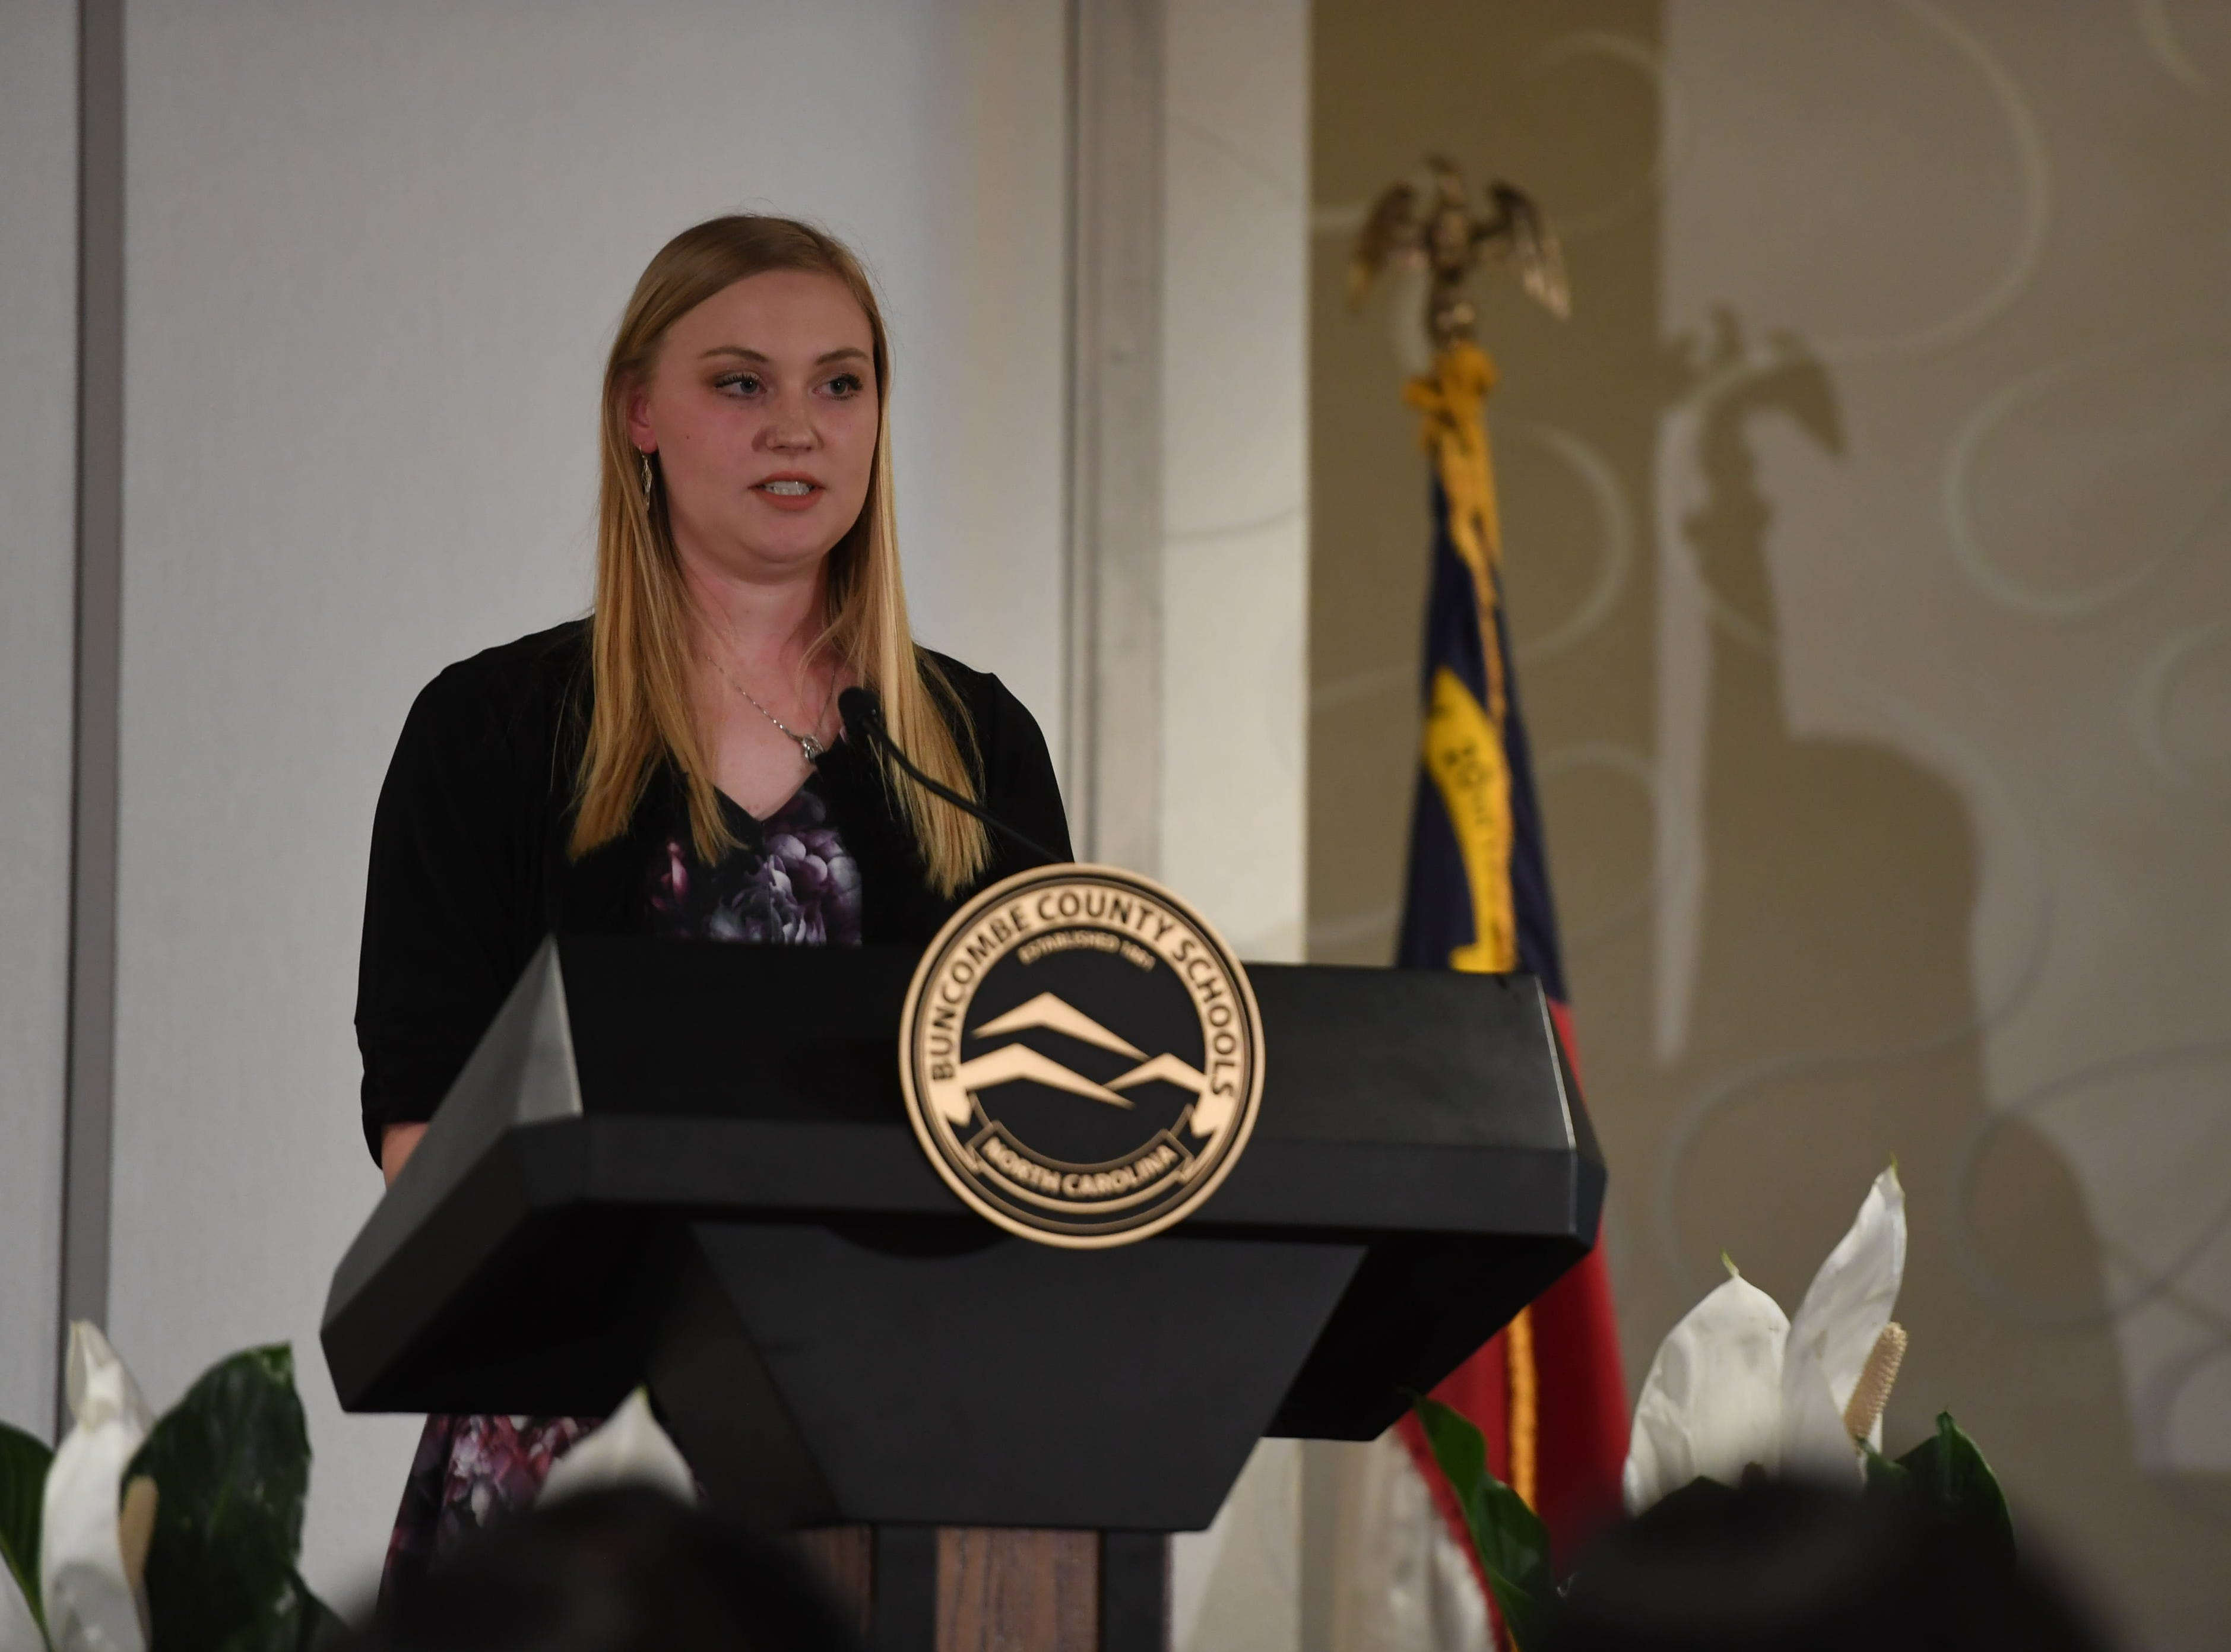 Enka High School senior Neely Bennett speaks during the Buncombe County Top Scholars Banquet April 30, 2019 at the Renaissance Hotel in Asheville.